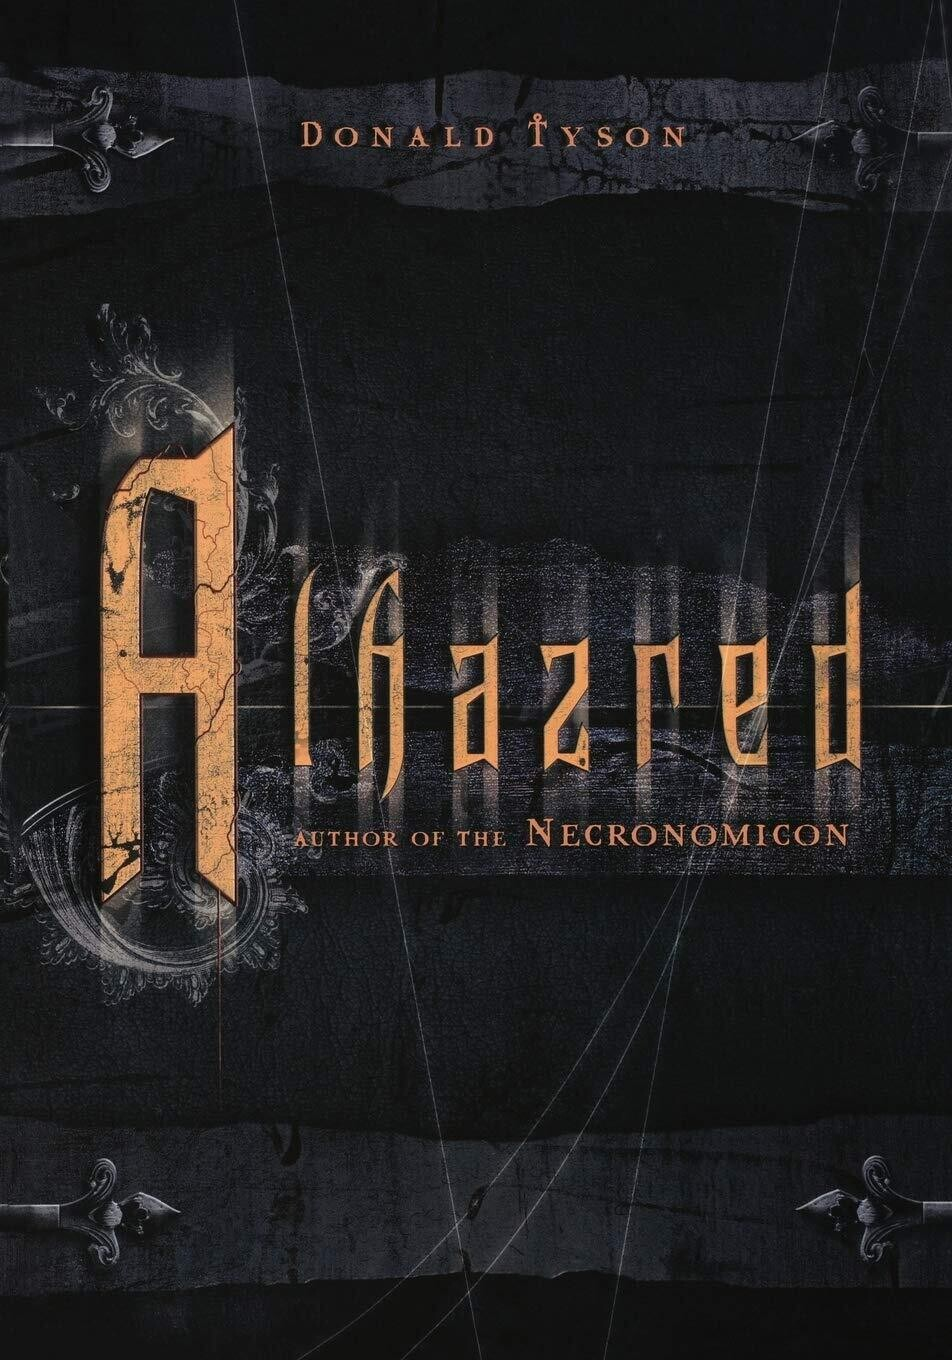 Alhazred by Donald Tyson